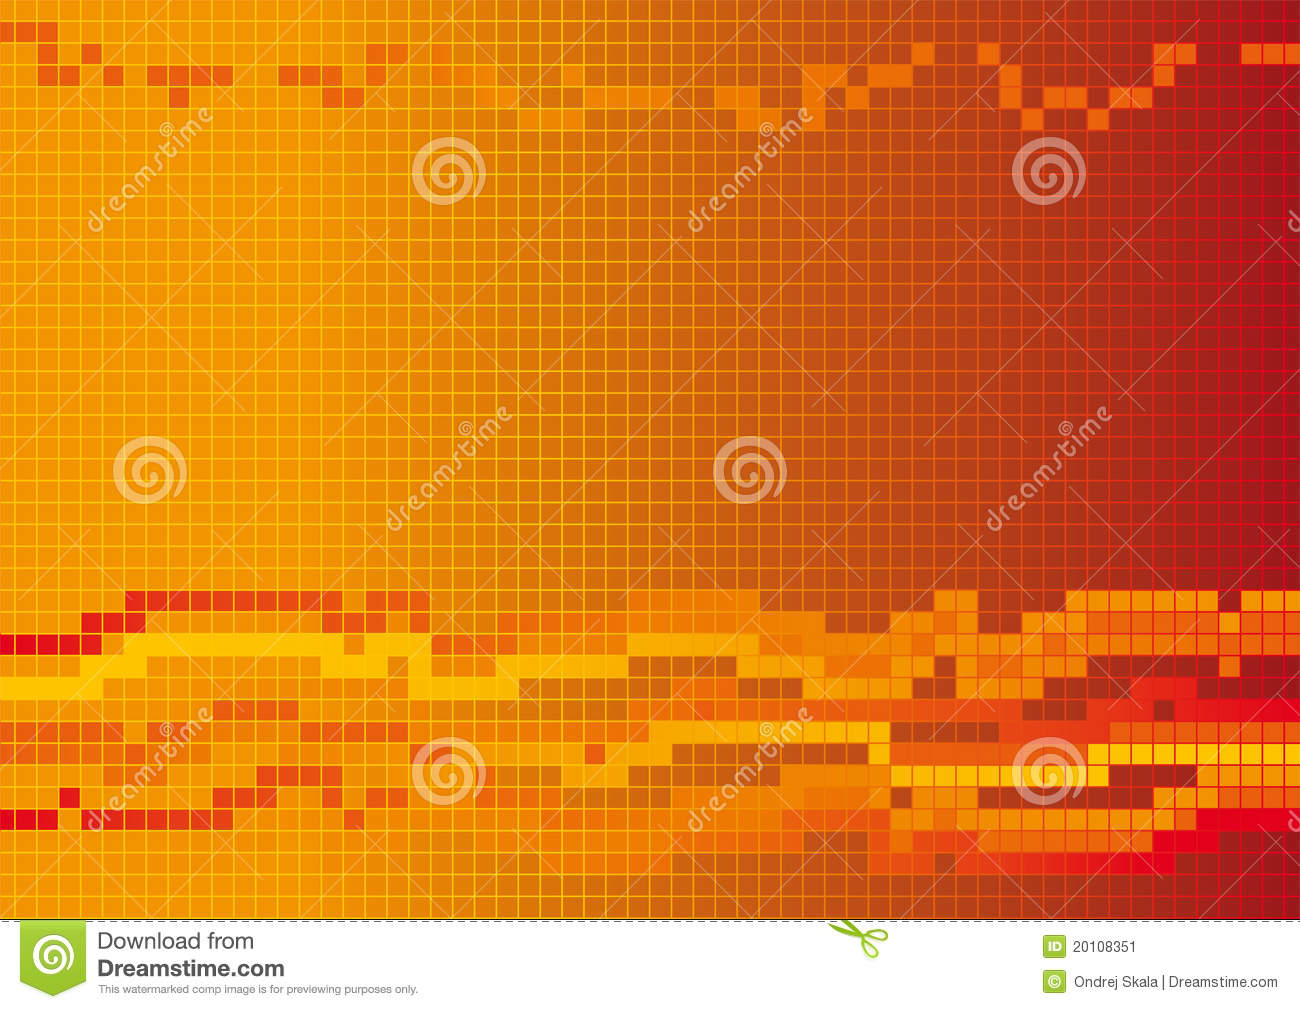 Vector - Background Technical Stock Image